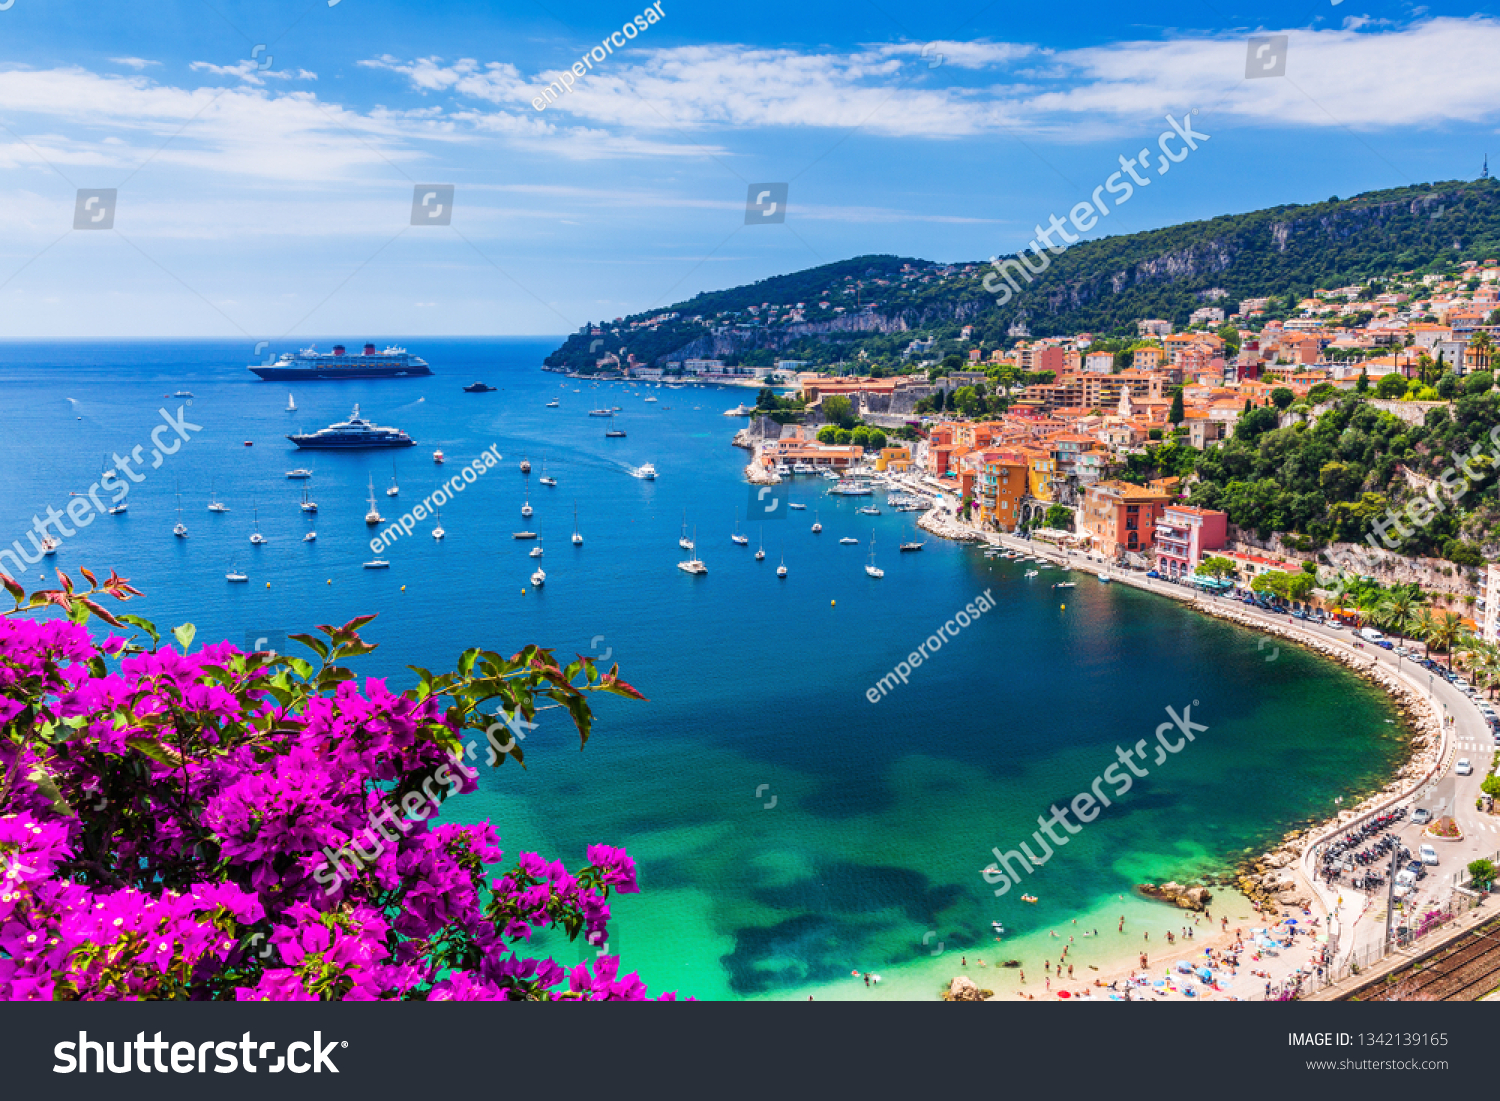 Villefranche sur Mer, France. Seaside town on the French Riviera (or Côte d'Azur). #1342139165